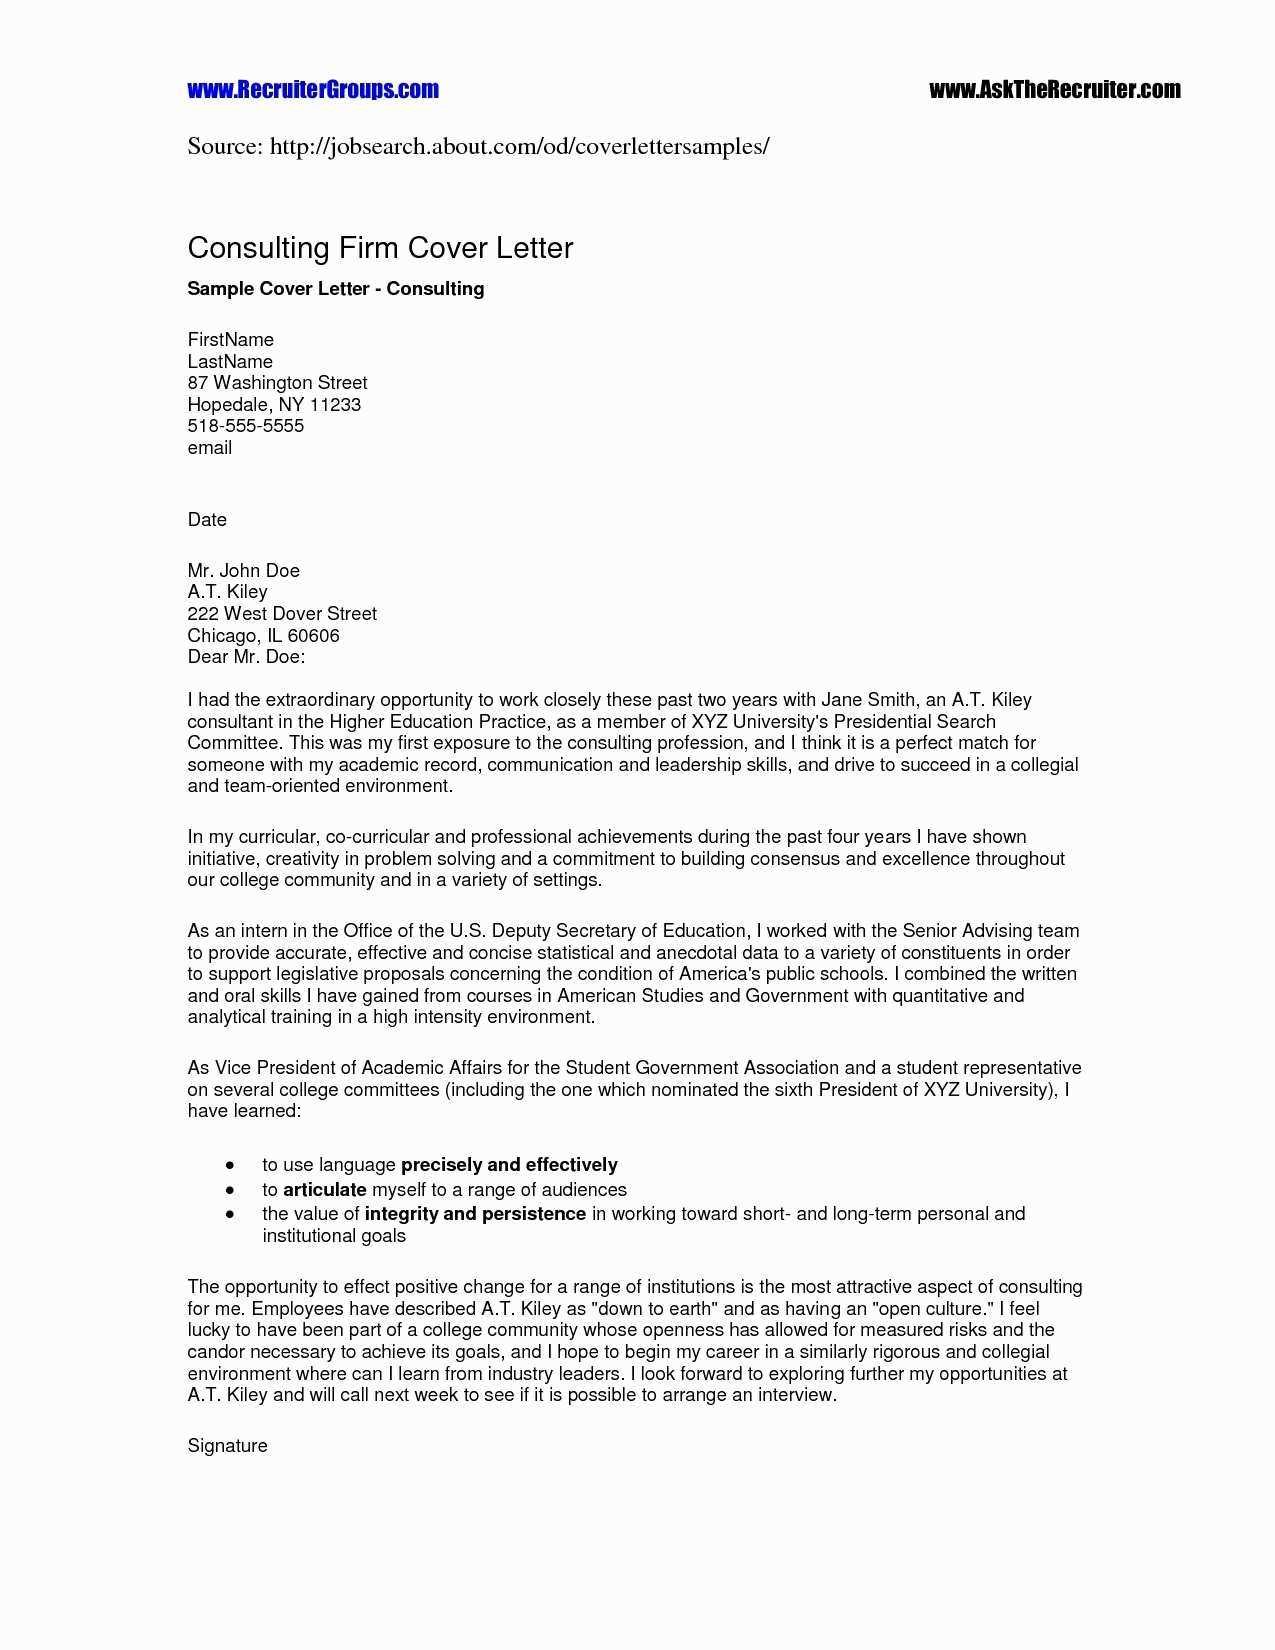 Payment Agreement Letter Template - Legal Document for Payment Agreement New Legal Agreement Between Two